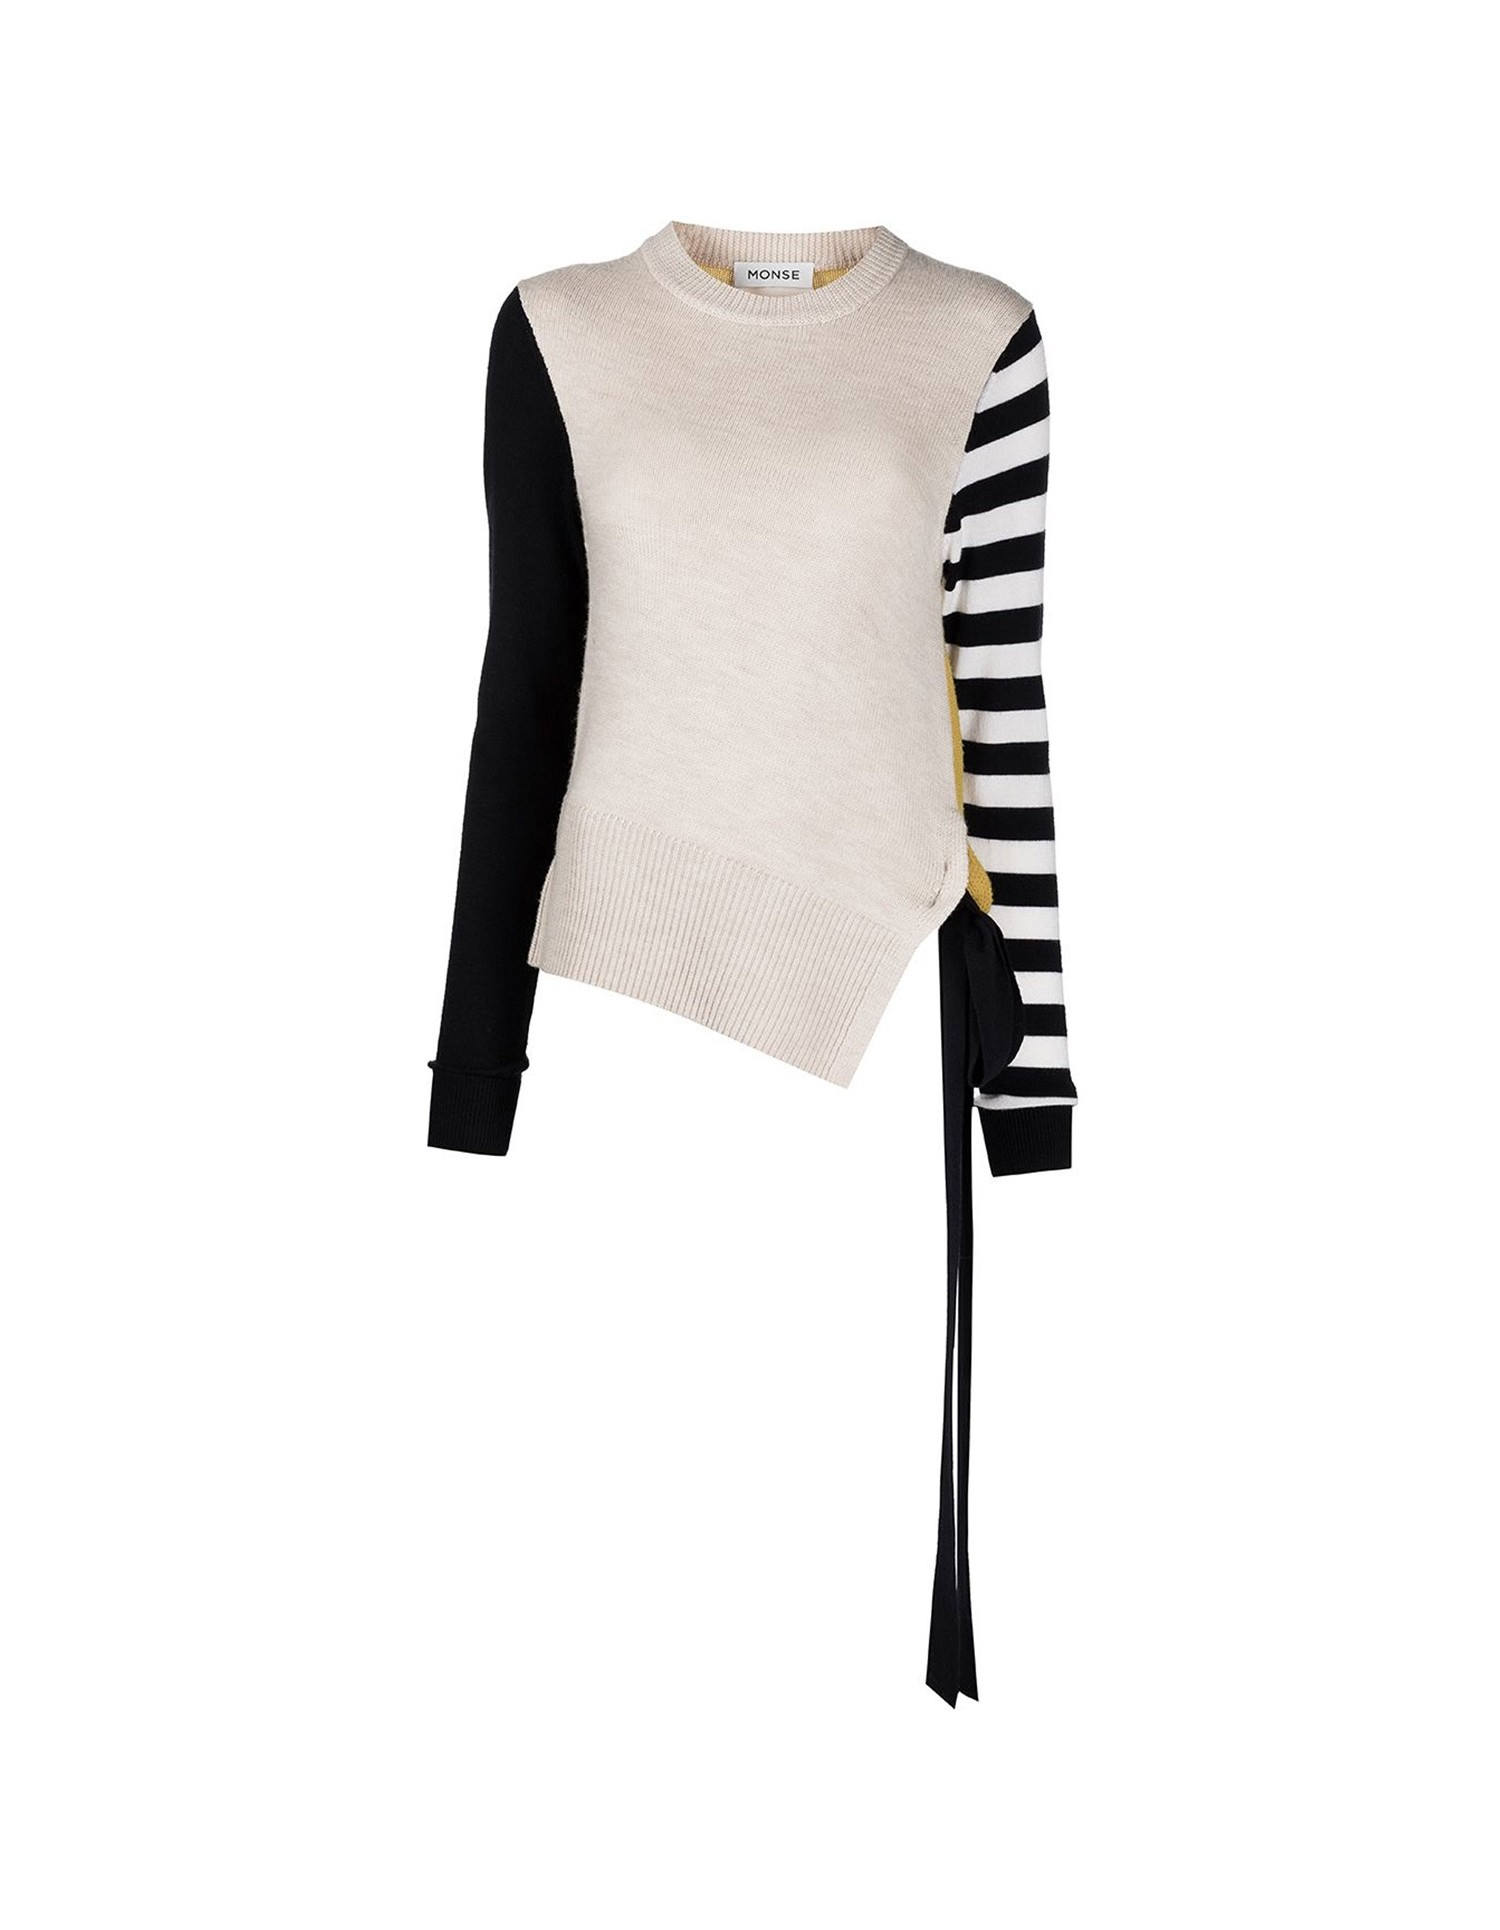 MONSE Stripe Sleeve Color Block Knit Top on Model No Background Front